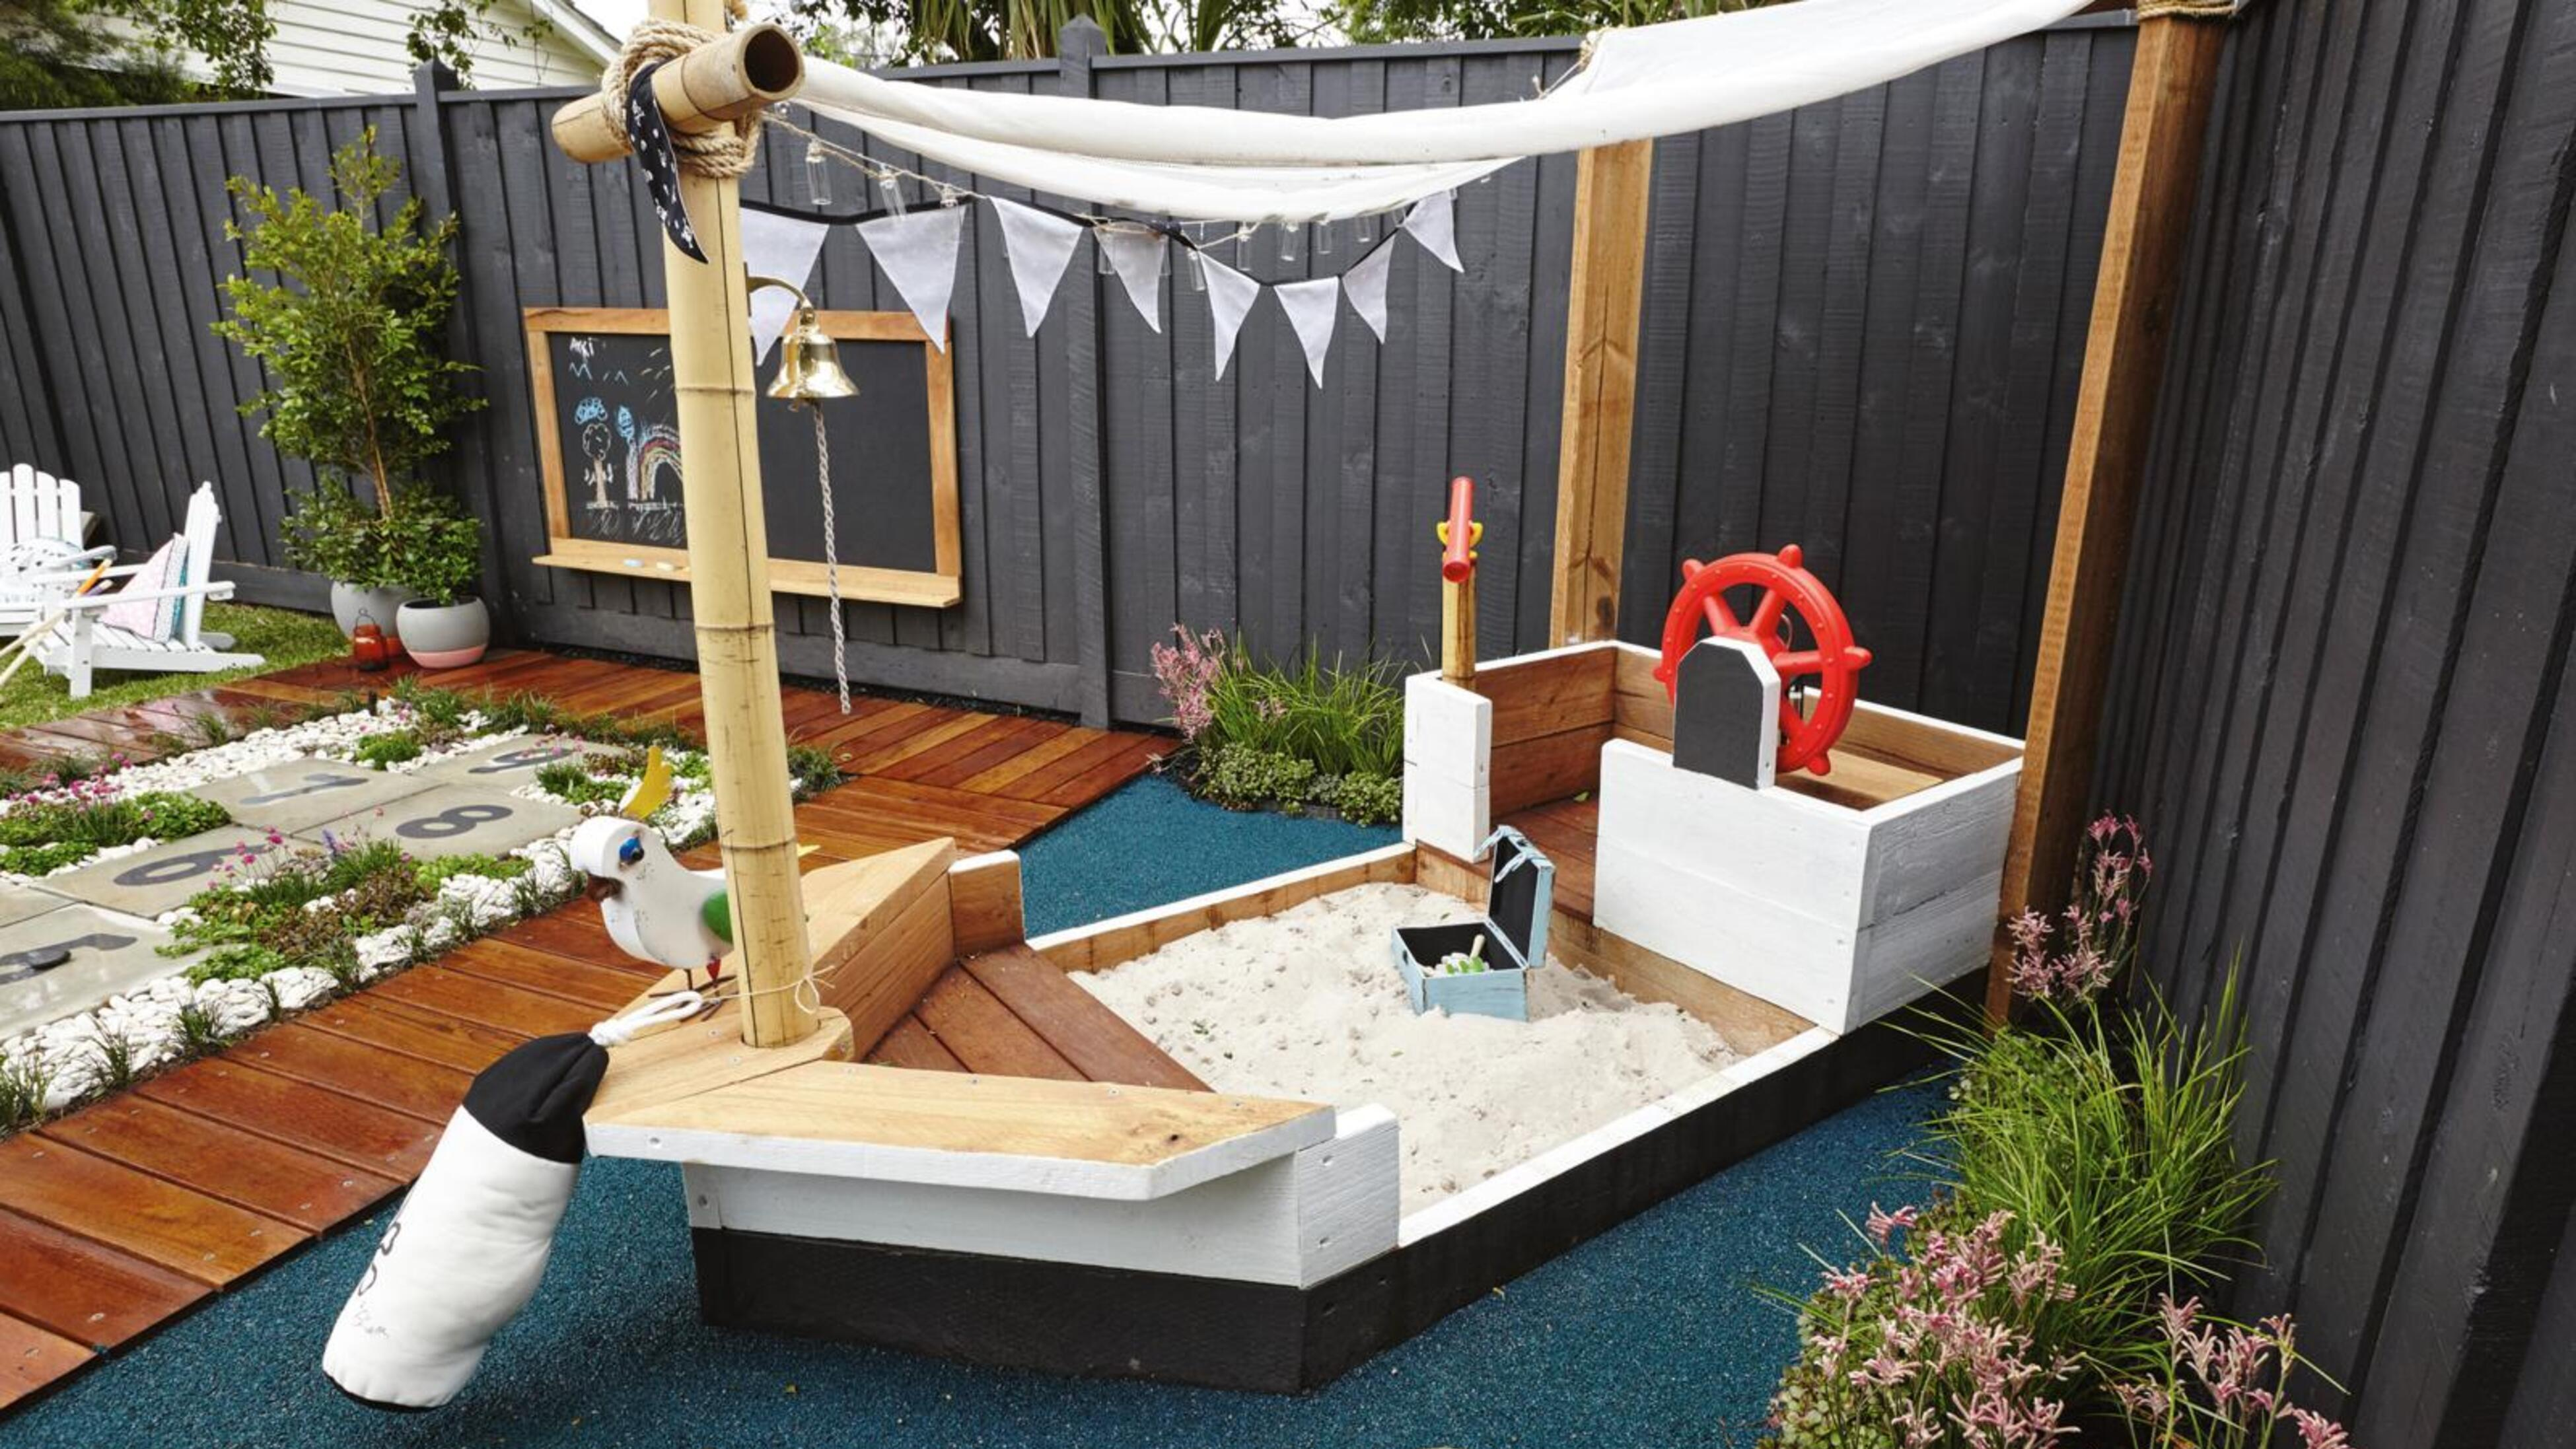 Backyard area with pirate ship play area, hopscotch and chalkboard on fence.